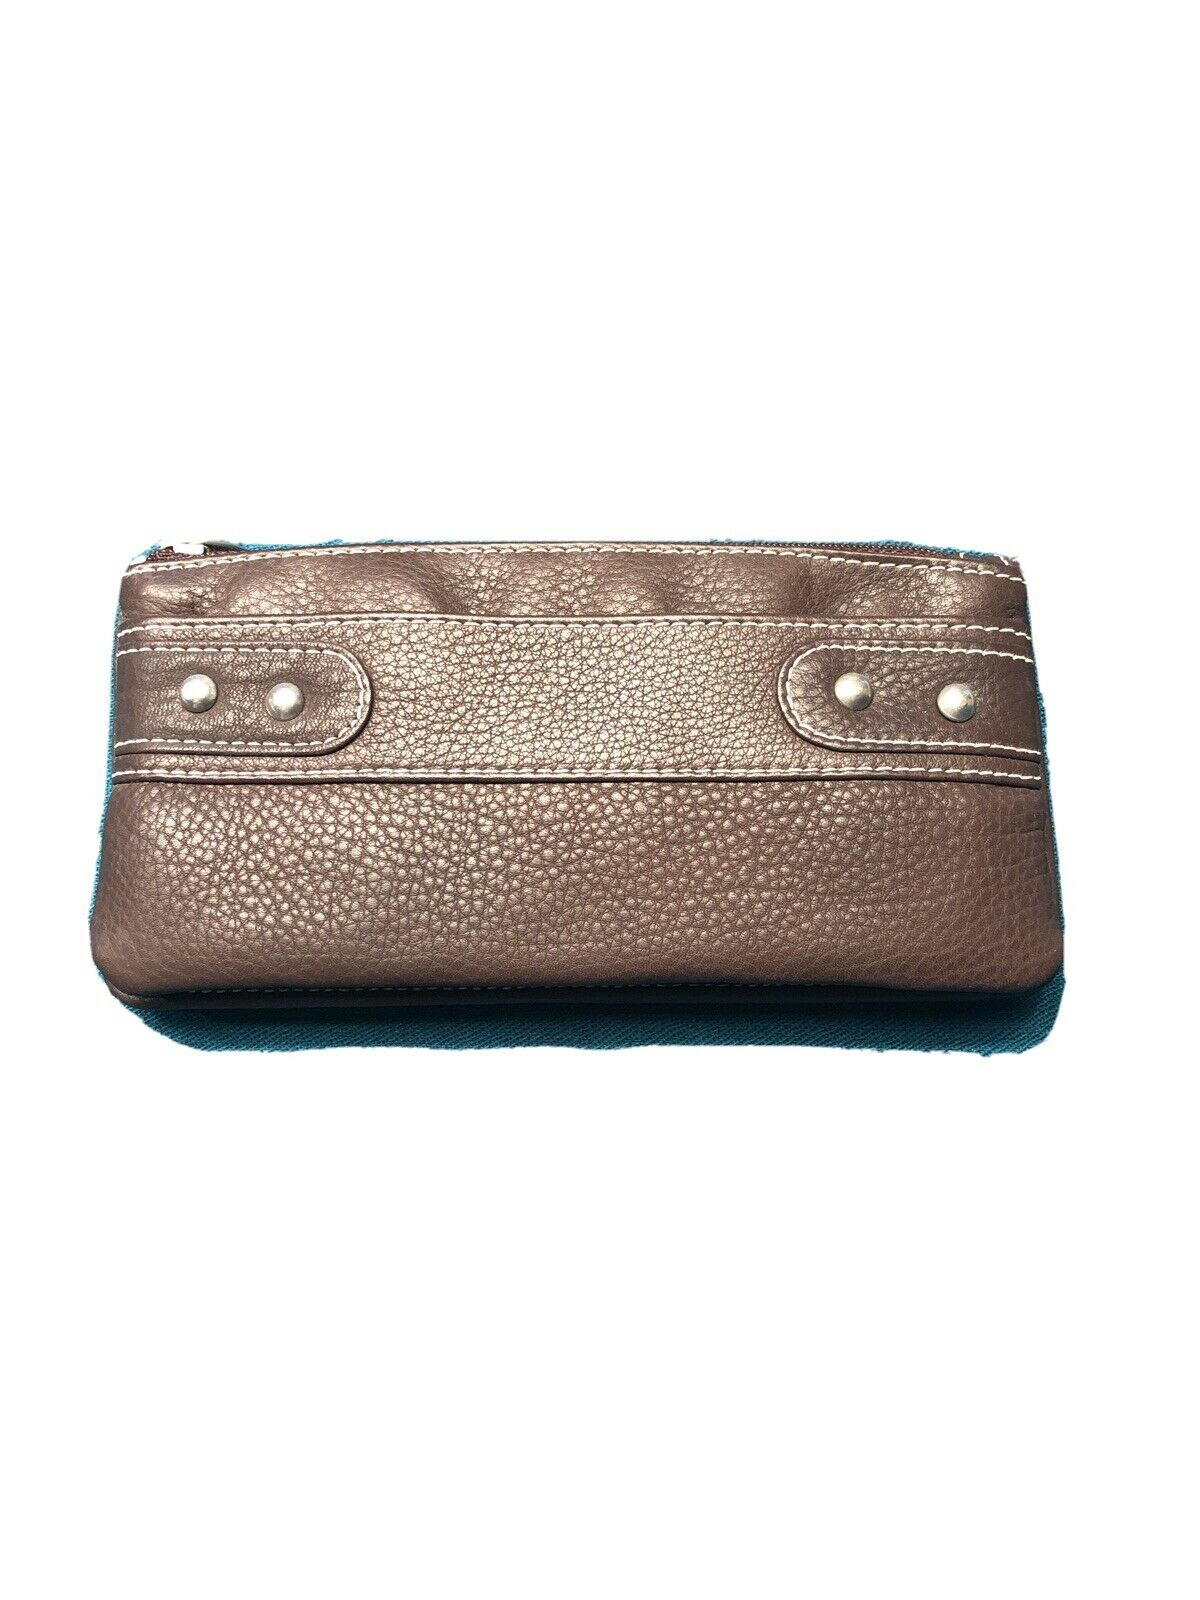 NWT, Paul & Taylor Brown Leather Women's Snap Wallet